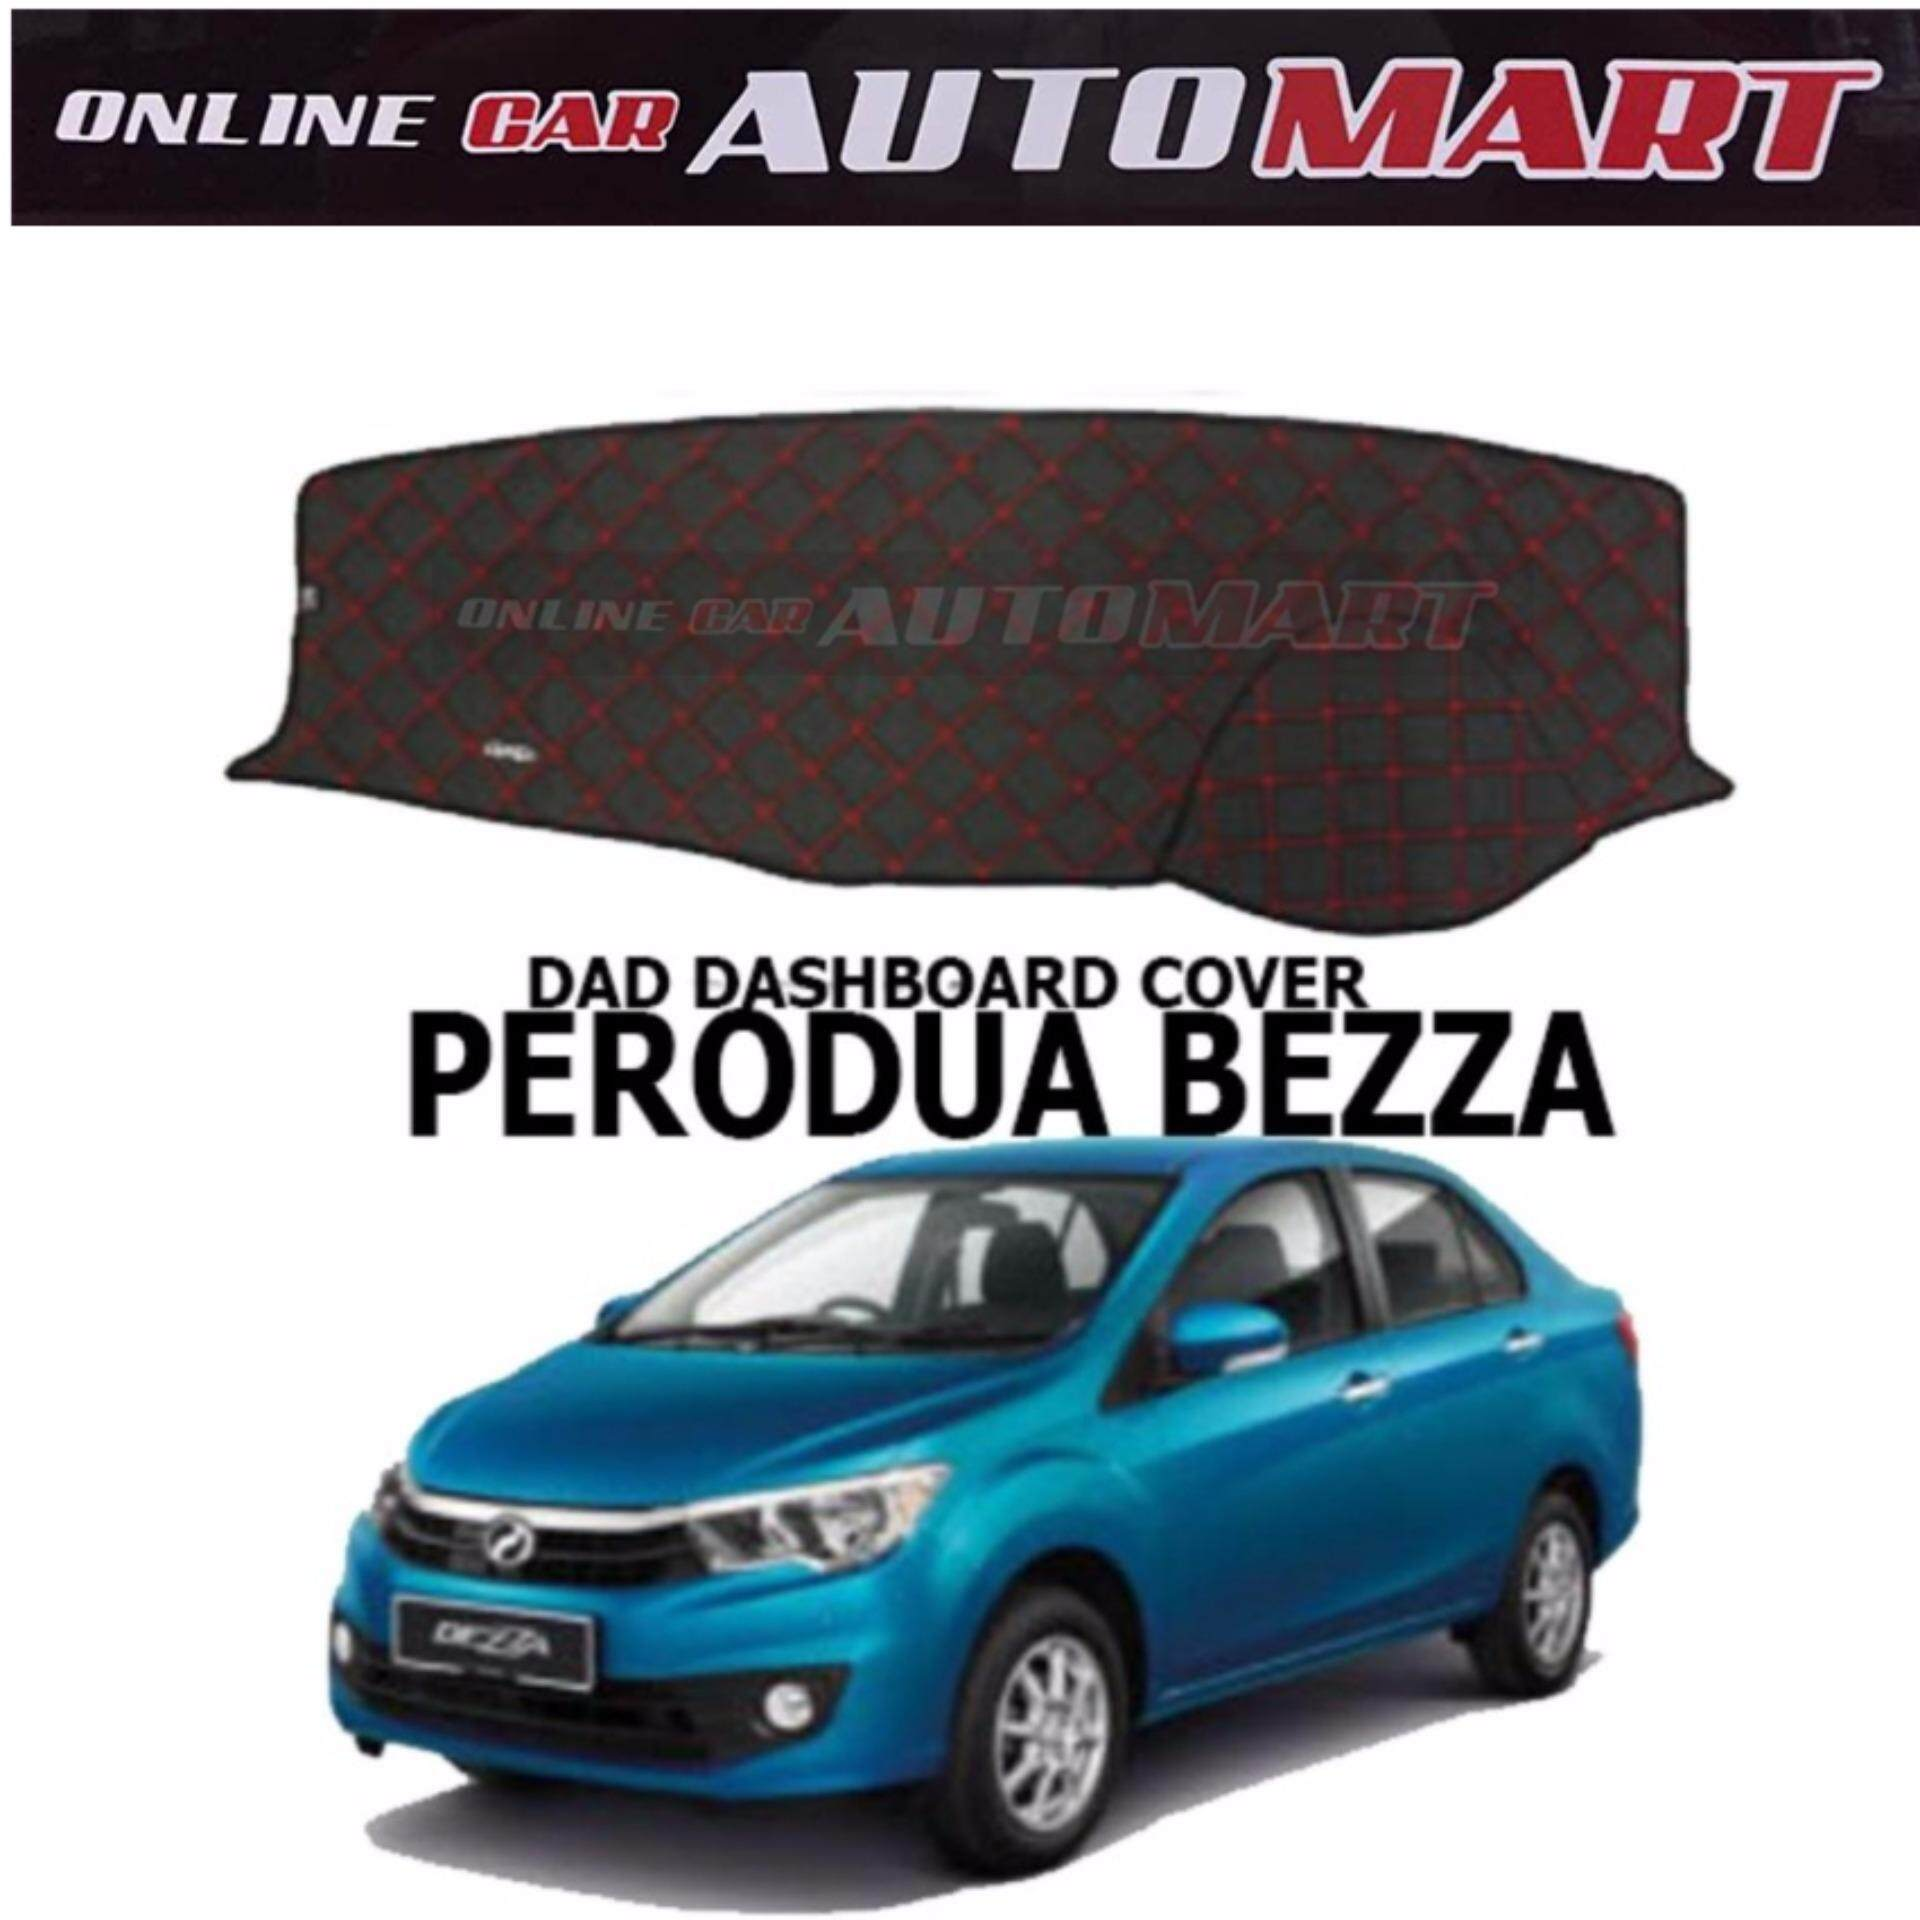 DAD Non Slip Dashboard Cover - Perodua Bezza